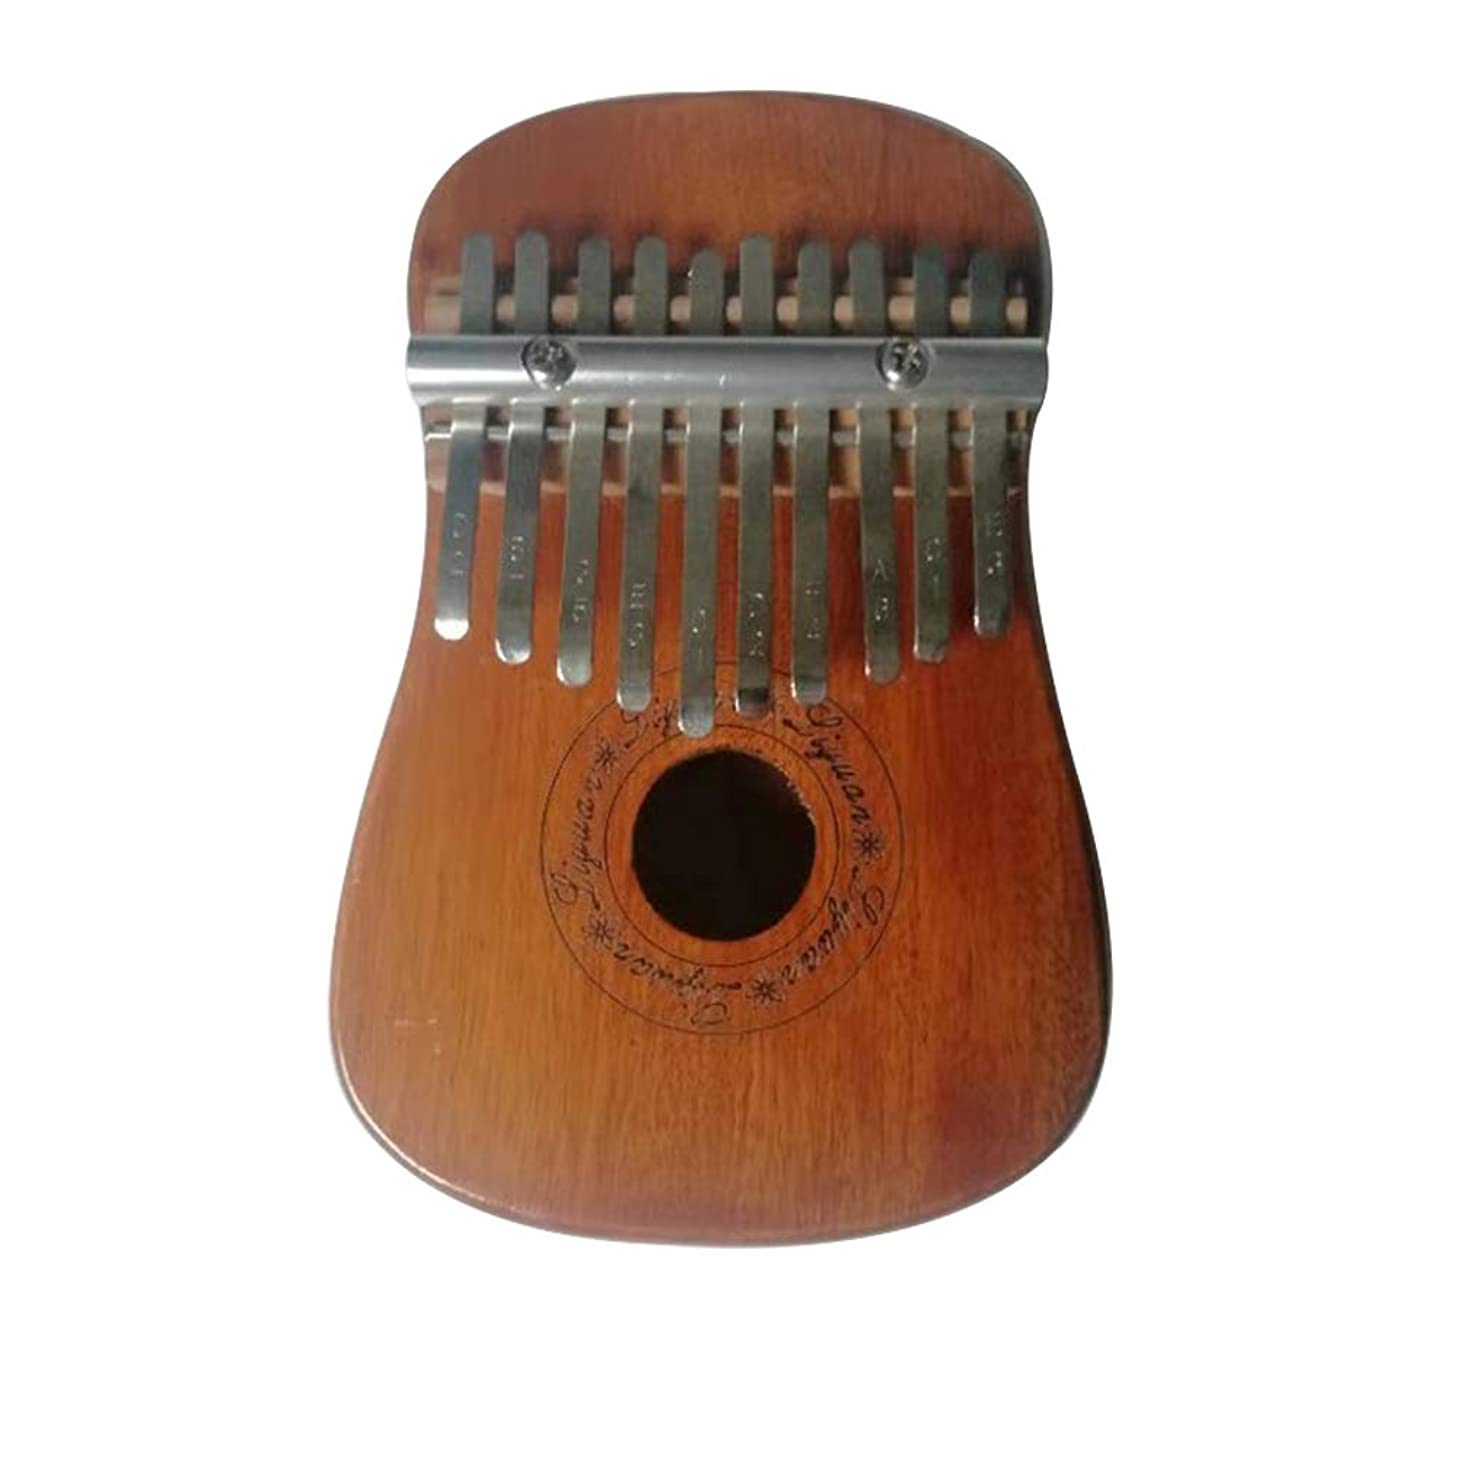 Kehuashina 10 Key Kalimba Thumb Piano Gourd Shape Finger Piano Mahogany Body 10 Tone